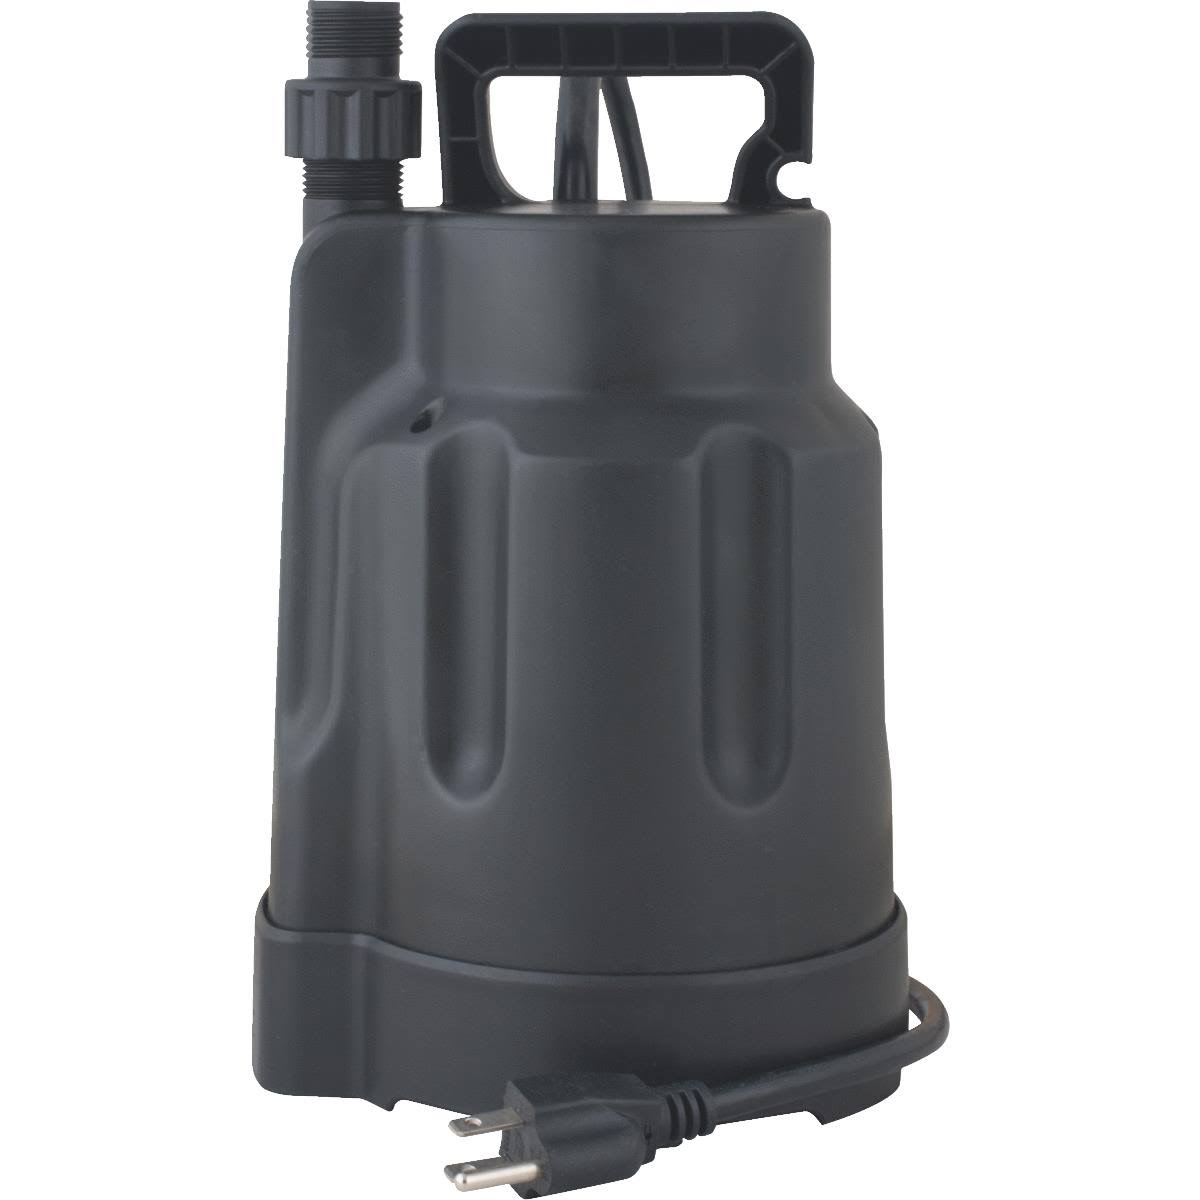 Do it Submersible Utility Pump - 1/4HP